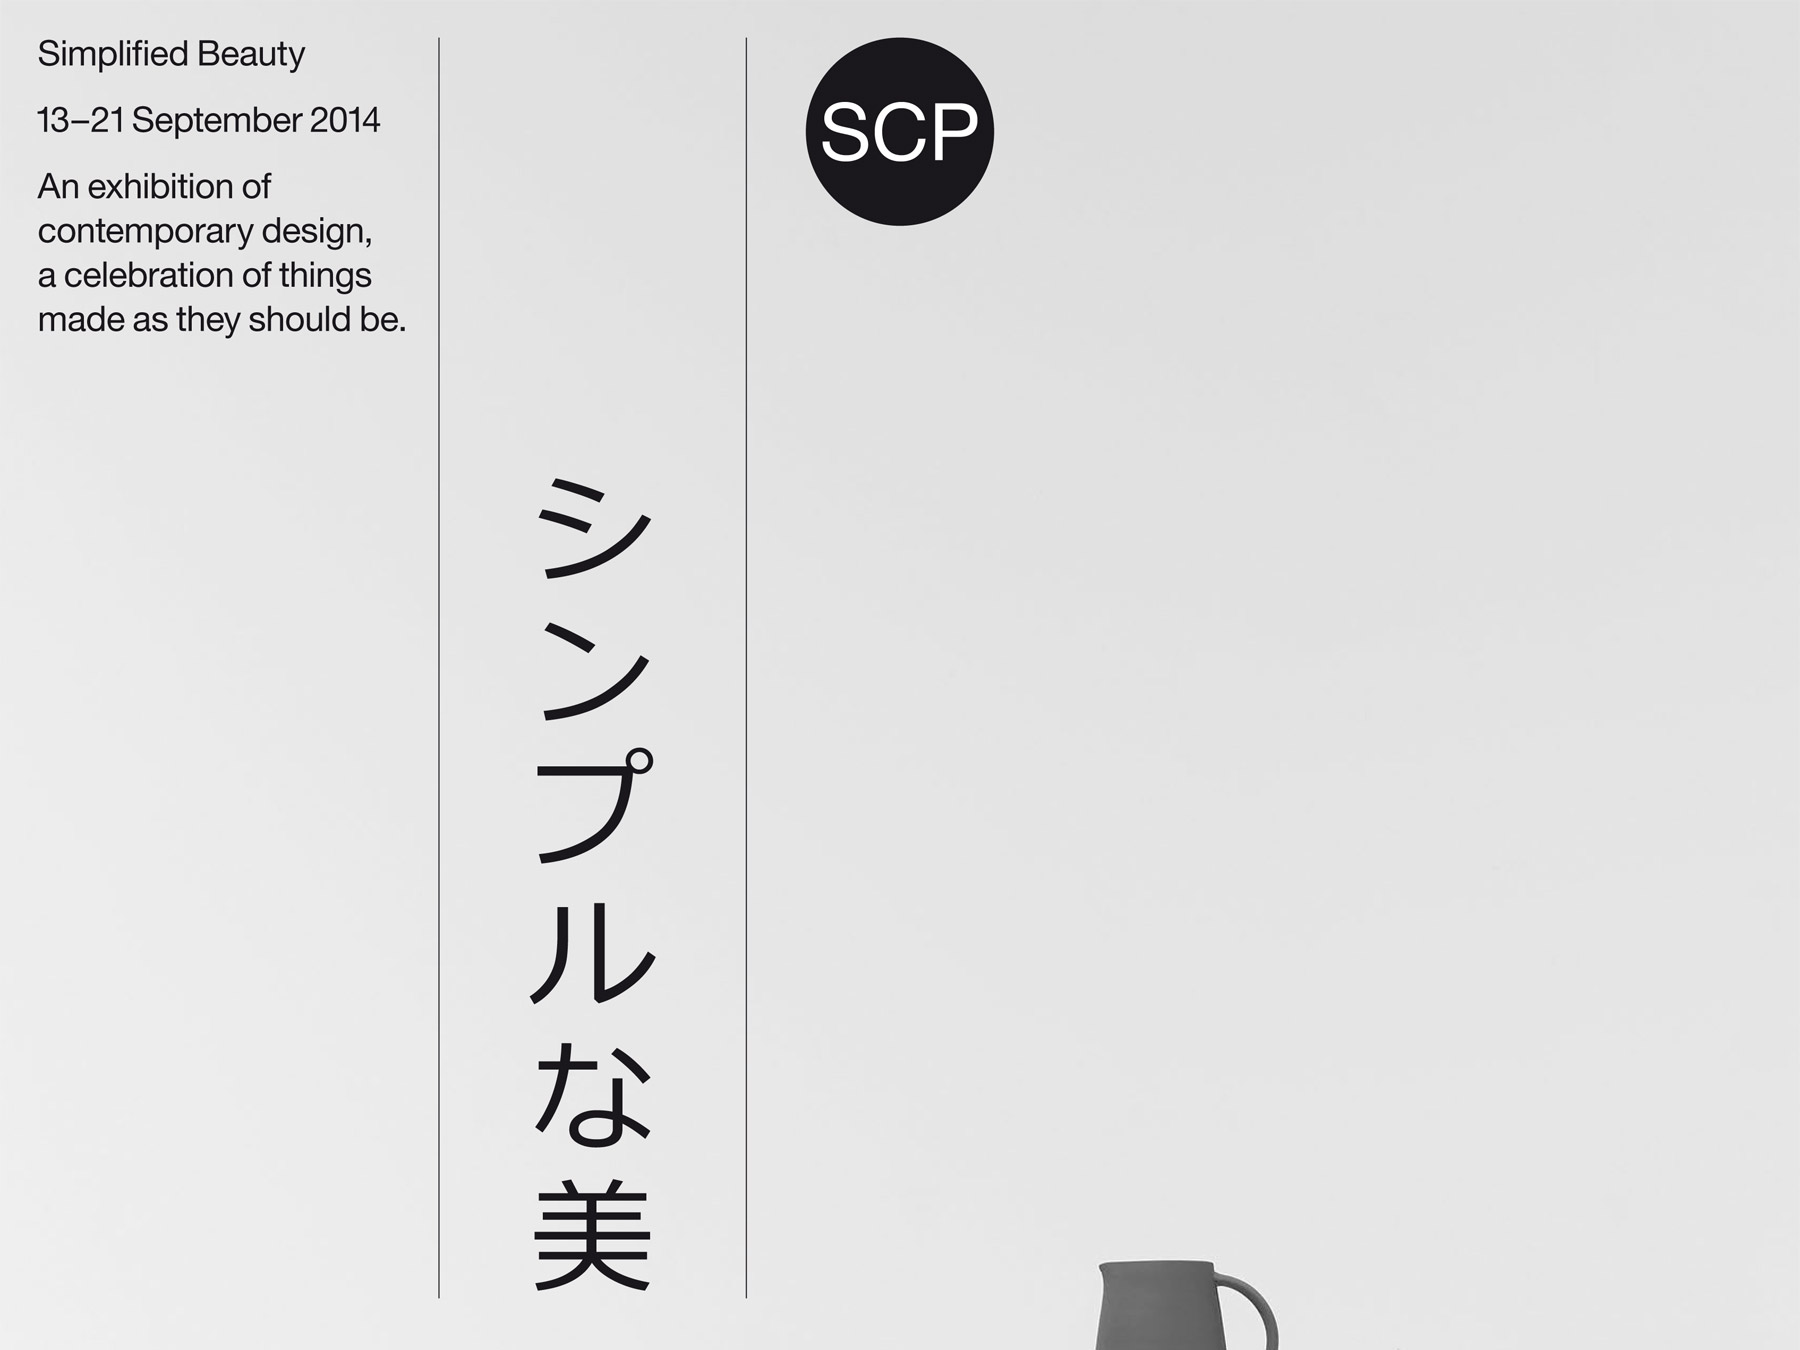 SCP_Simplified_Beauty_Supplement_2014-1